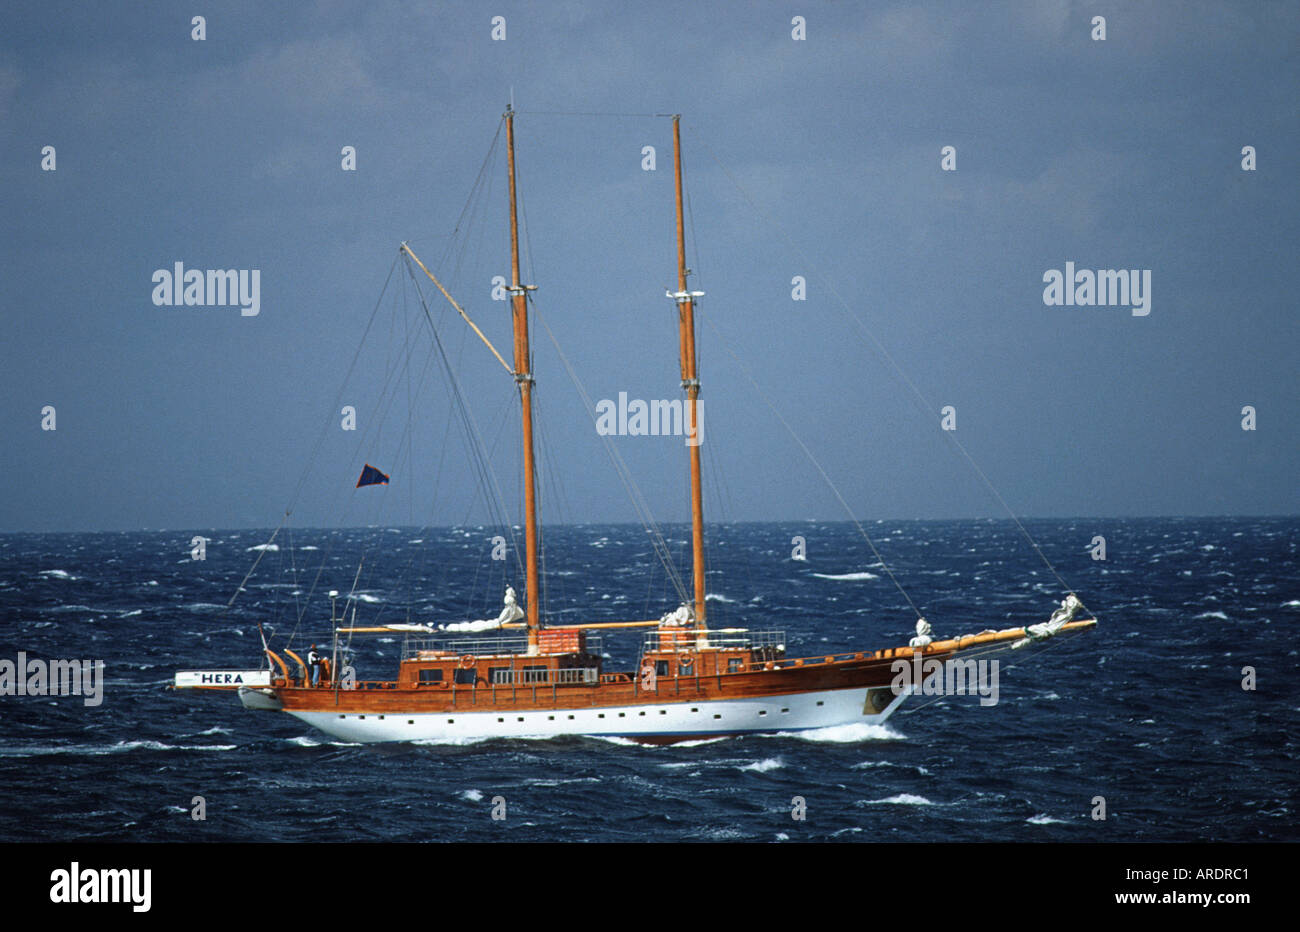 Yacht in the Mediterannean waters off the coast of Malta EUROPE - Stock Image